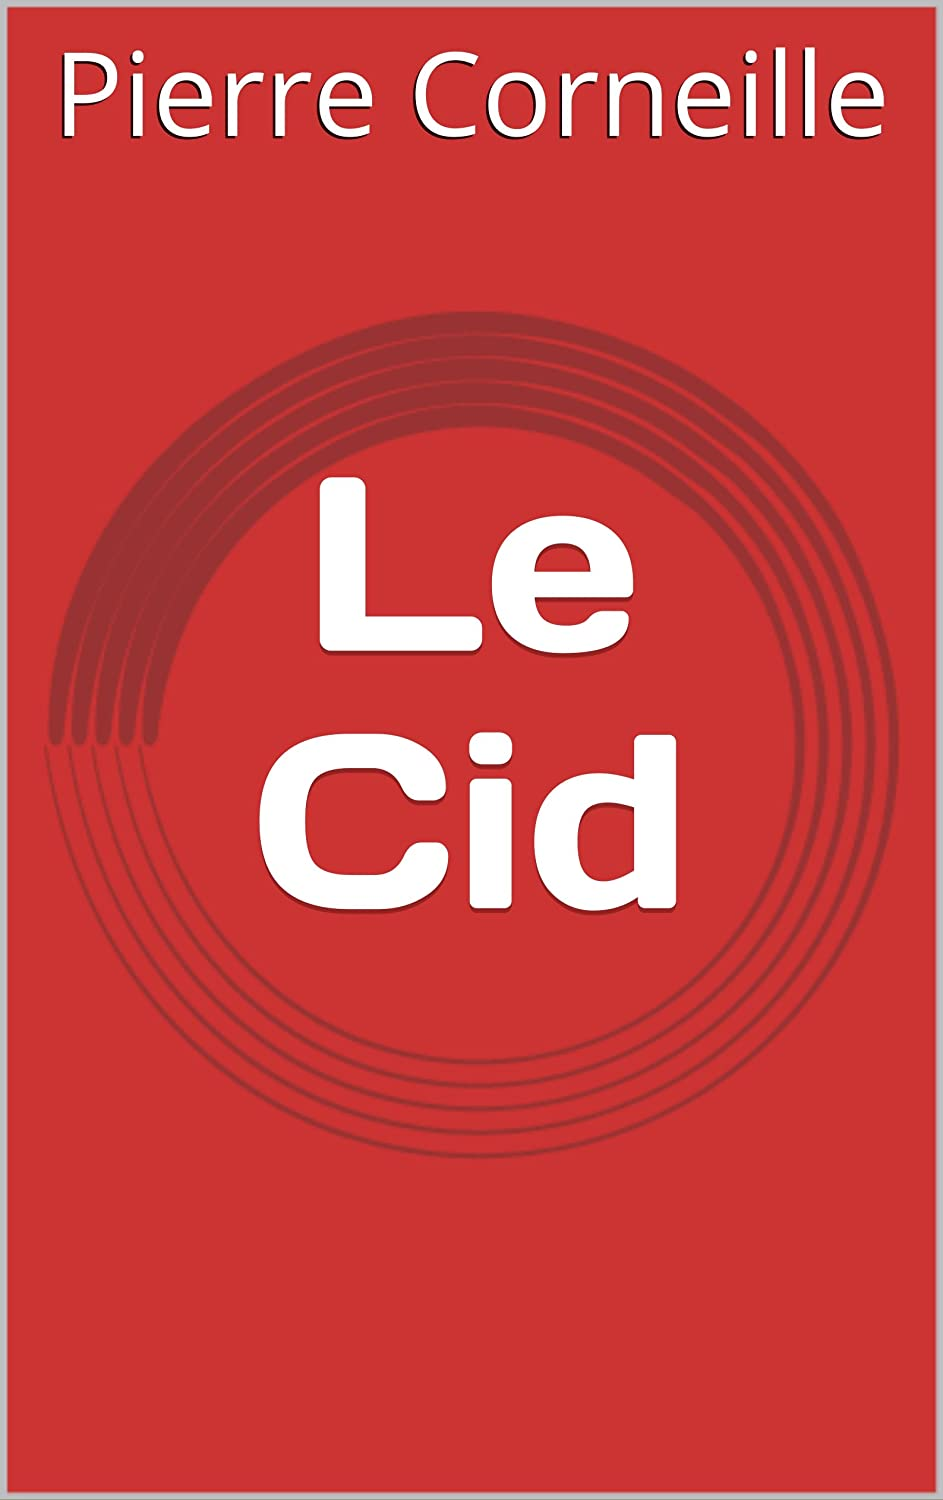 Le Cid (French Edition) eBook: Pierre Corneille: Amazon.es: Tienda ...